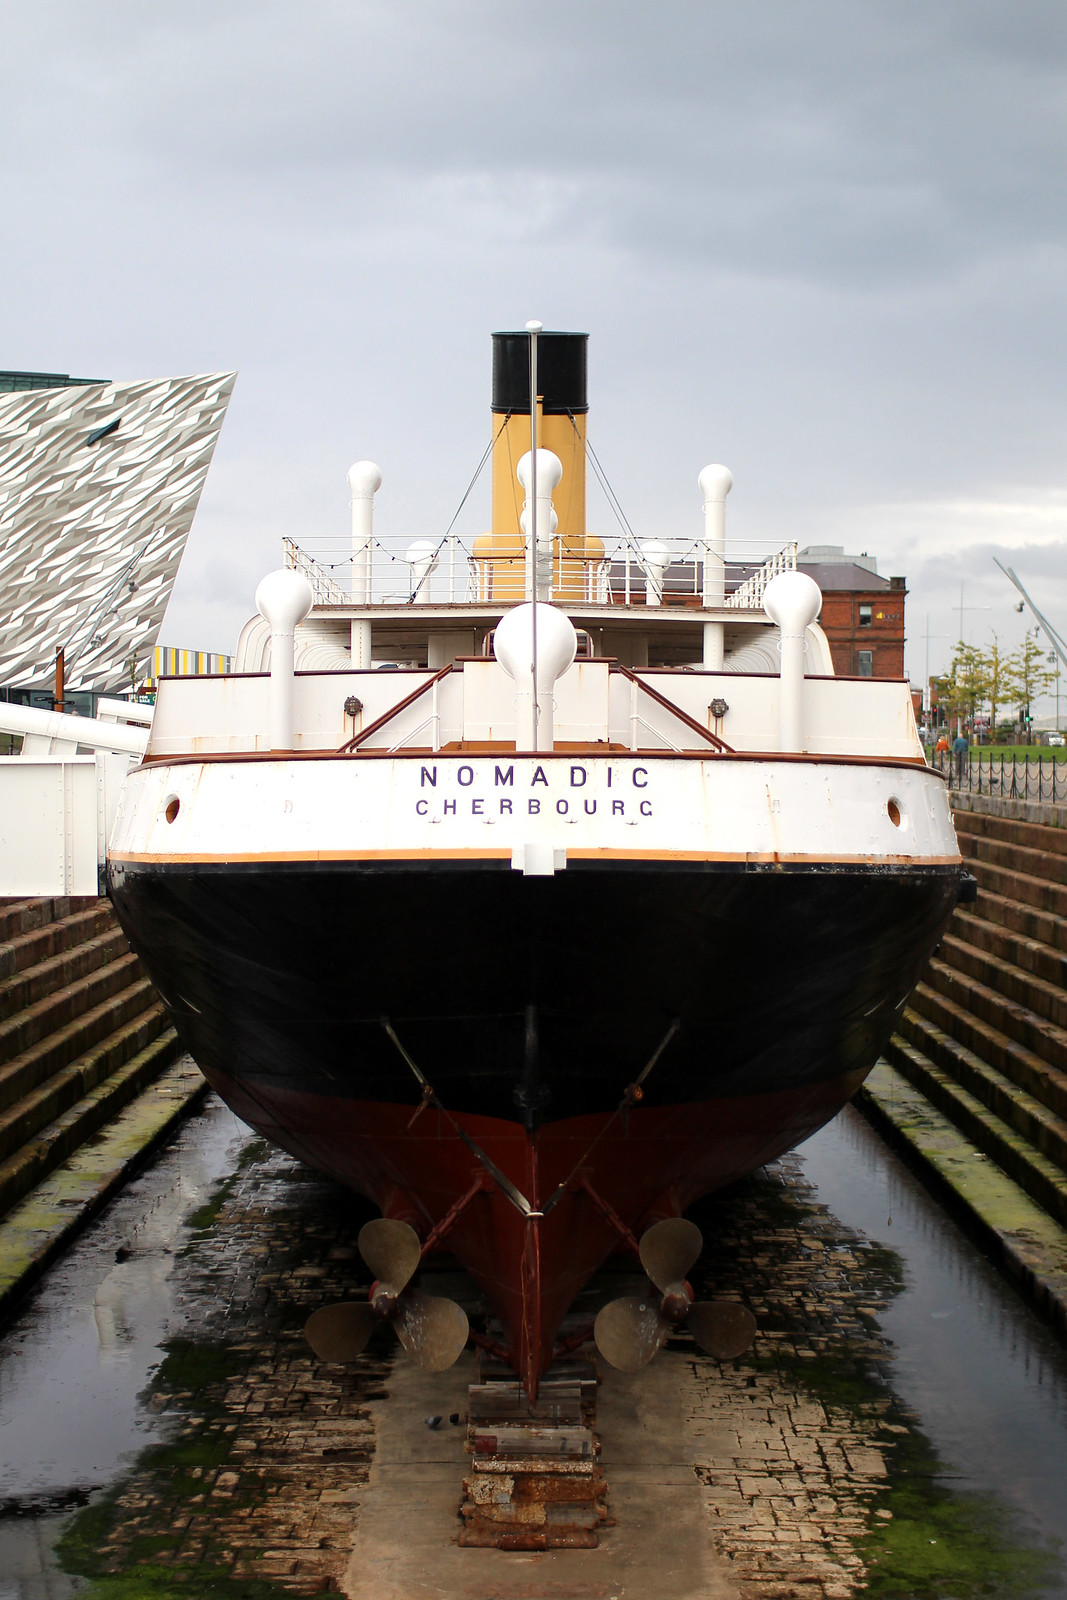 SS Nomadic Titanic Museum Belfast 48 hour guide travel blogger UK Northern Ireland